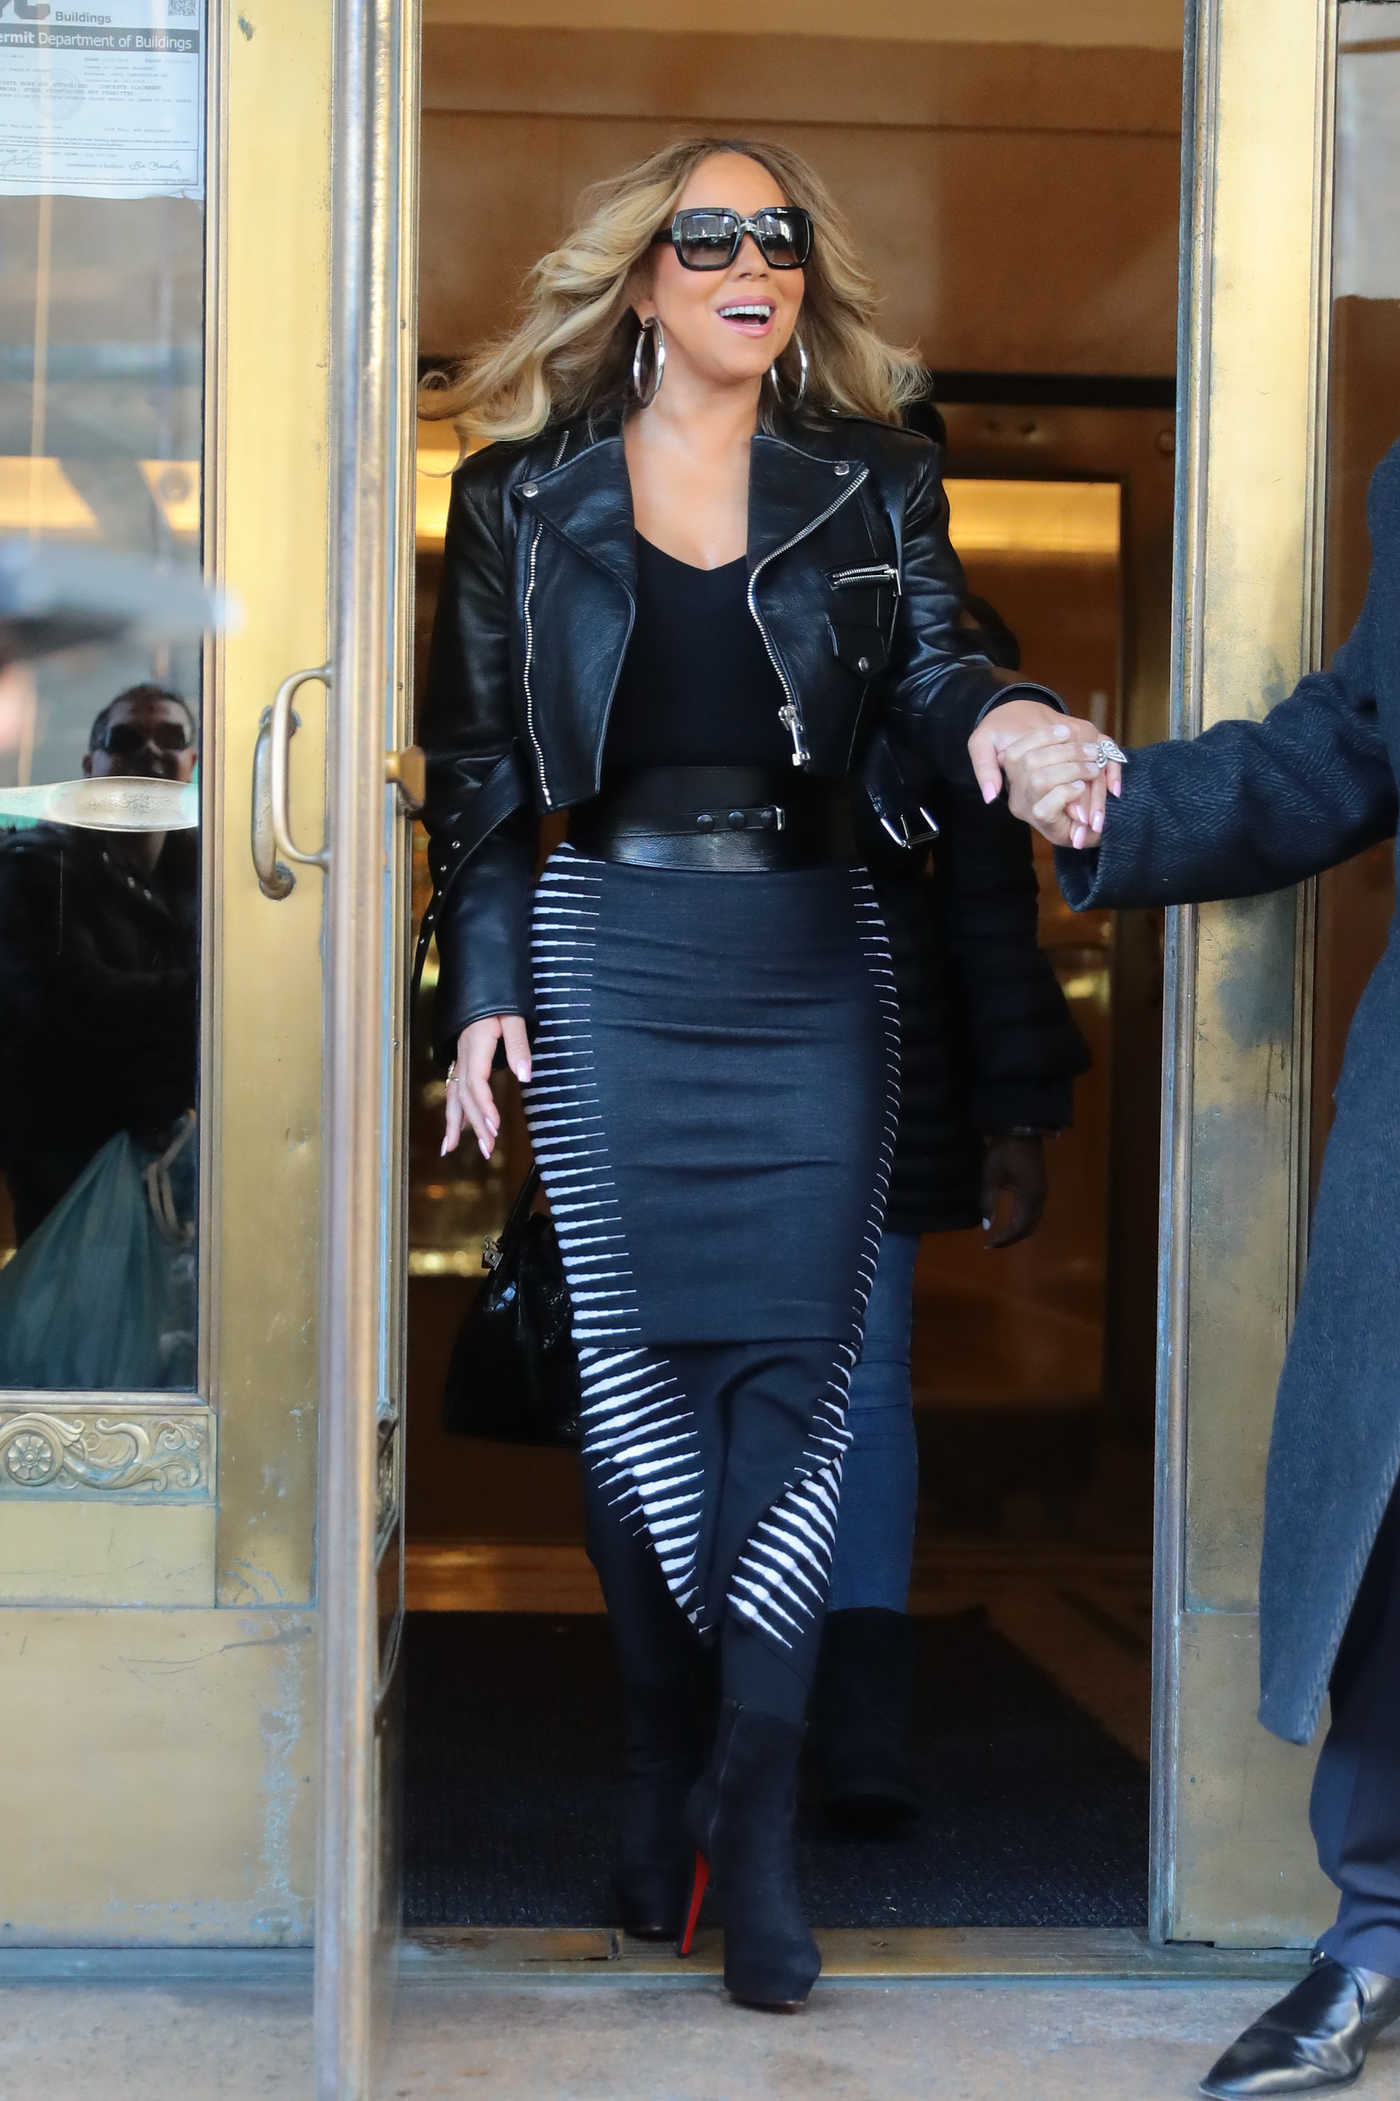 Mariah Carey in a Black Leather Jacket Leaves Her Apartment in New York City 11/16/2018